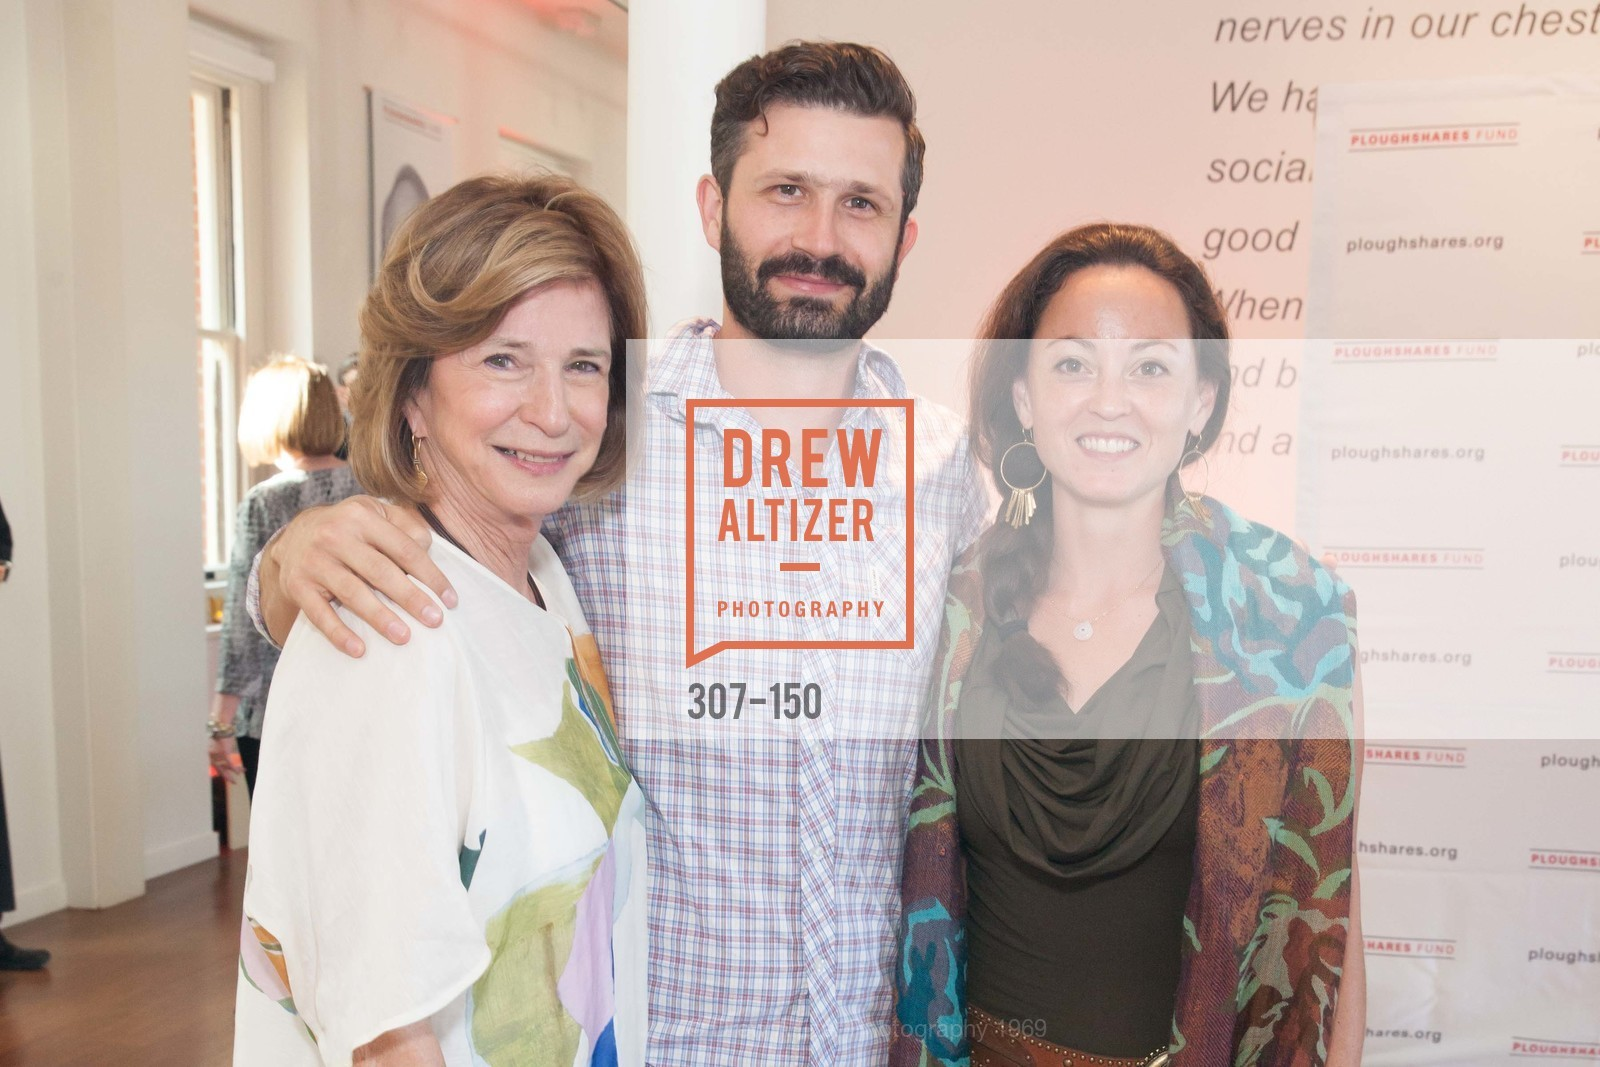 Mary Lloyd Estrin, Jesse Estrin, Adrienne Chow, Ploughshares Fund Presenting CHAIN REACTION 2015, The Open Square at Futures Without Violence. 100 Montgomery Street, June 7th, 2015,Drew Altizer, Drew Altizer Photography, full-service agency, private events, San Francisco photographer, photographer california